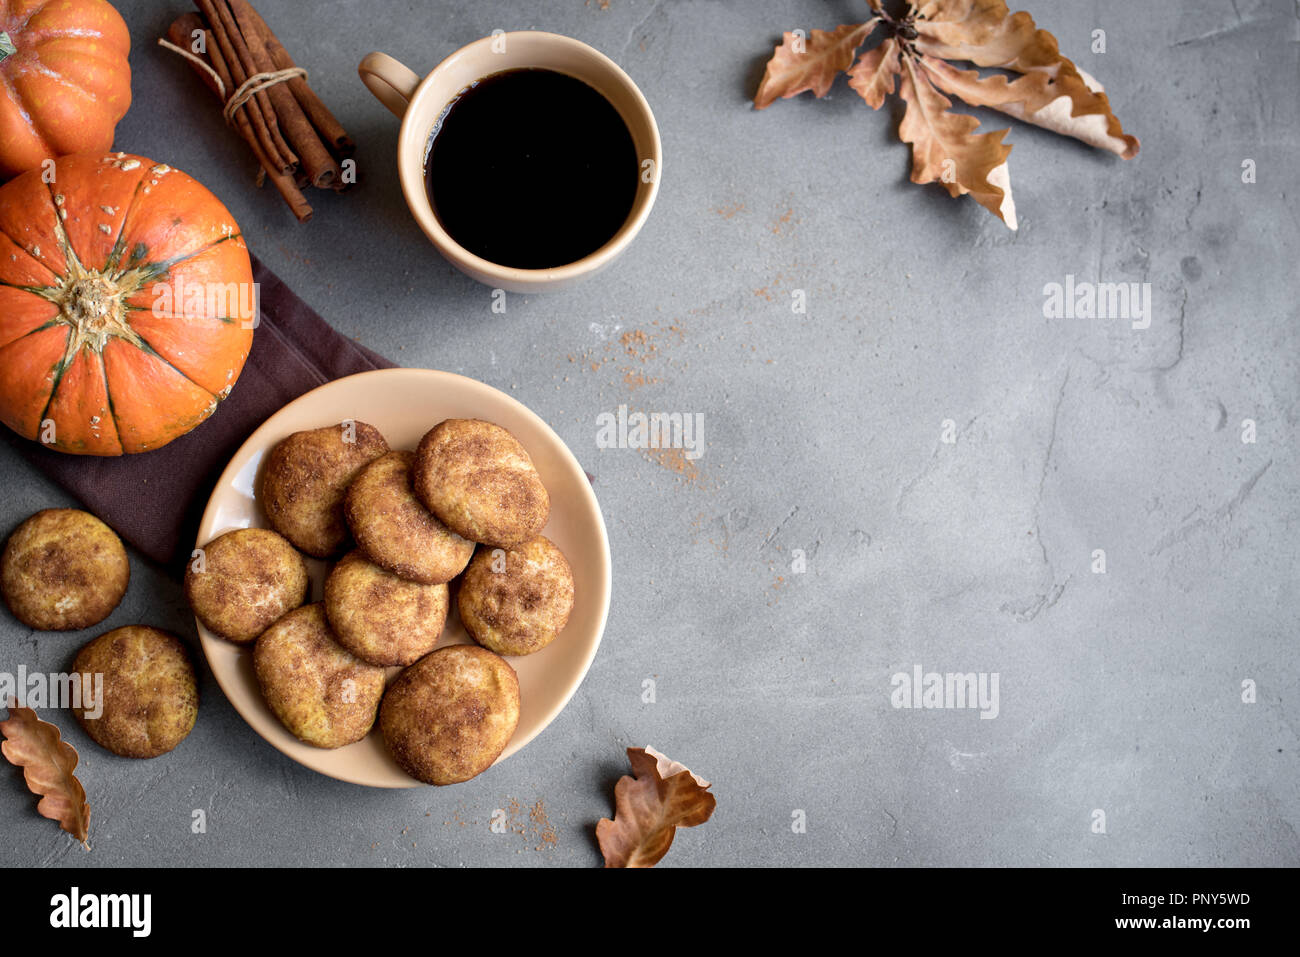 Pumpkin Snickerdoodle Cookies.  Seasonal Autumn Homemade Cookies, top view, copy space. Traditional desert Snickerdoodles for Autumn. Stock Photo